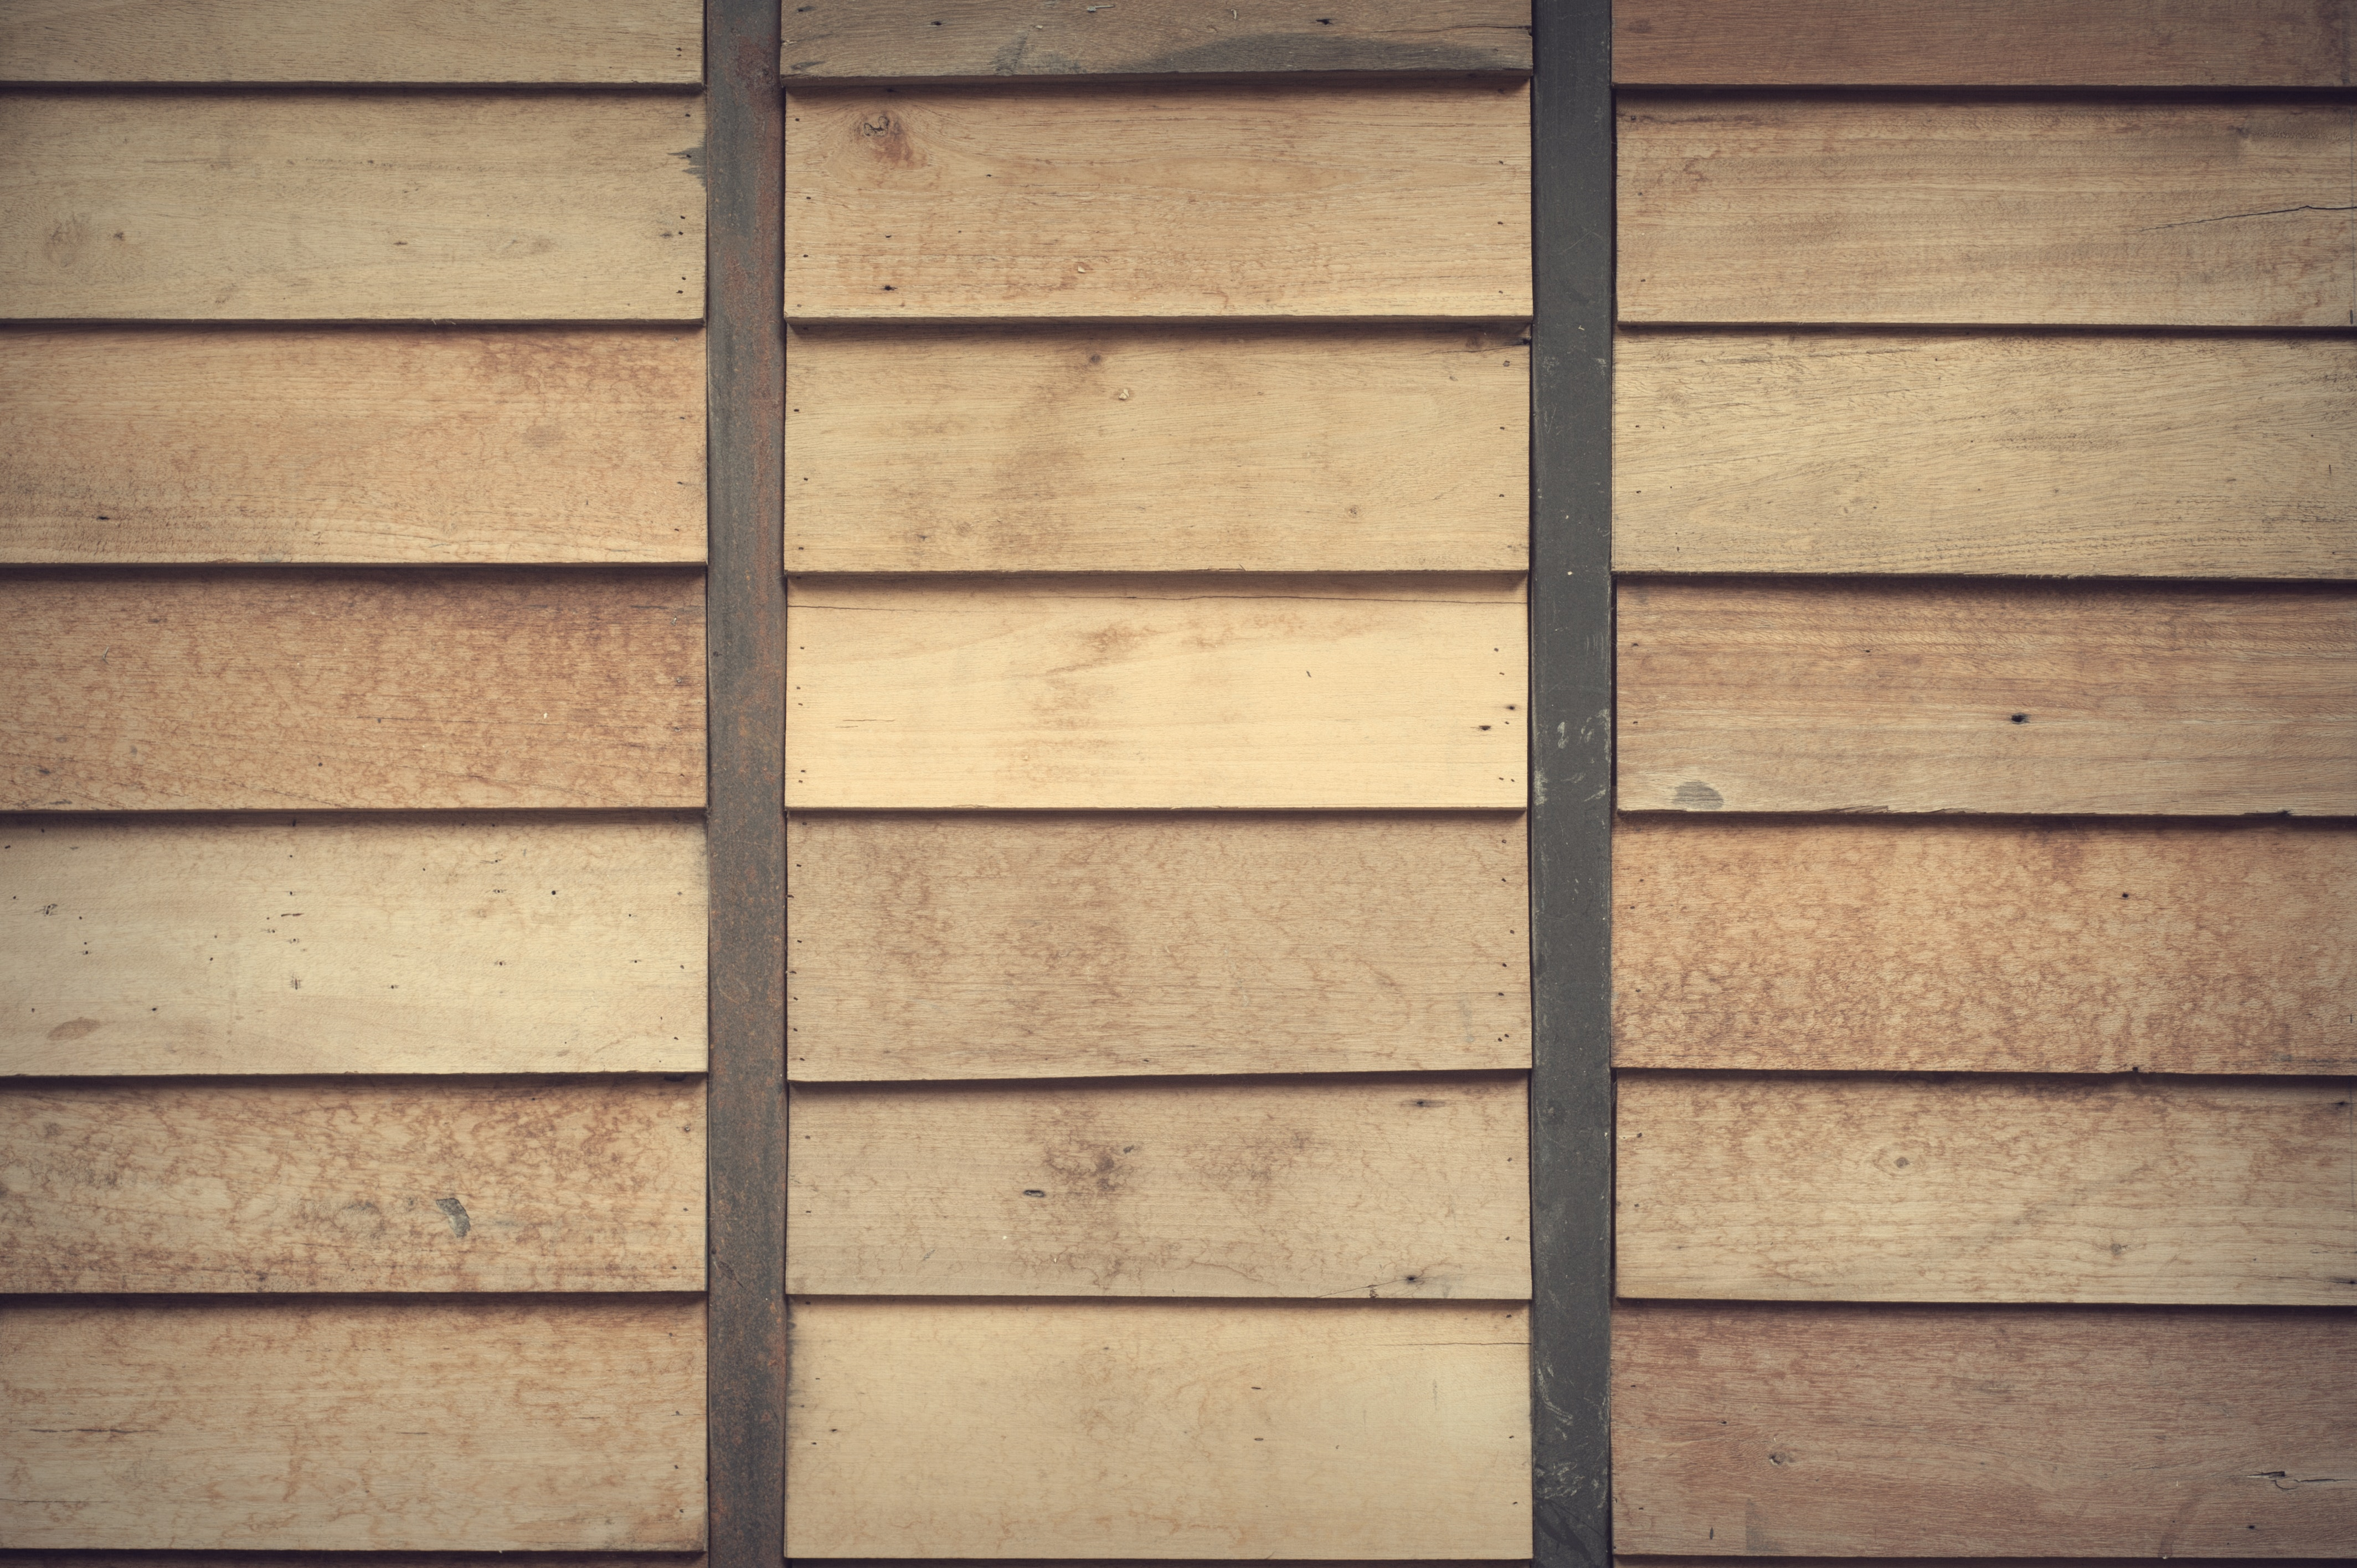 Close Up Photo Of Brown Wood Planks, Board, Hardwood, Lumber, Softwood, HQ Photo